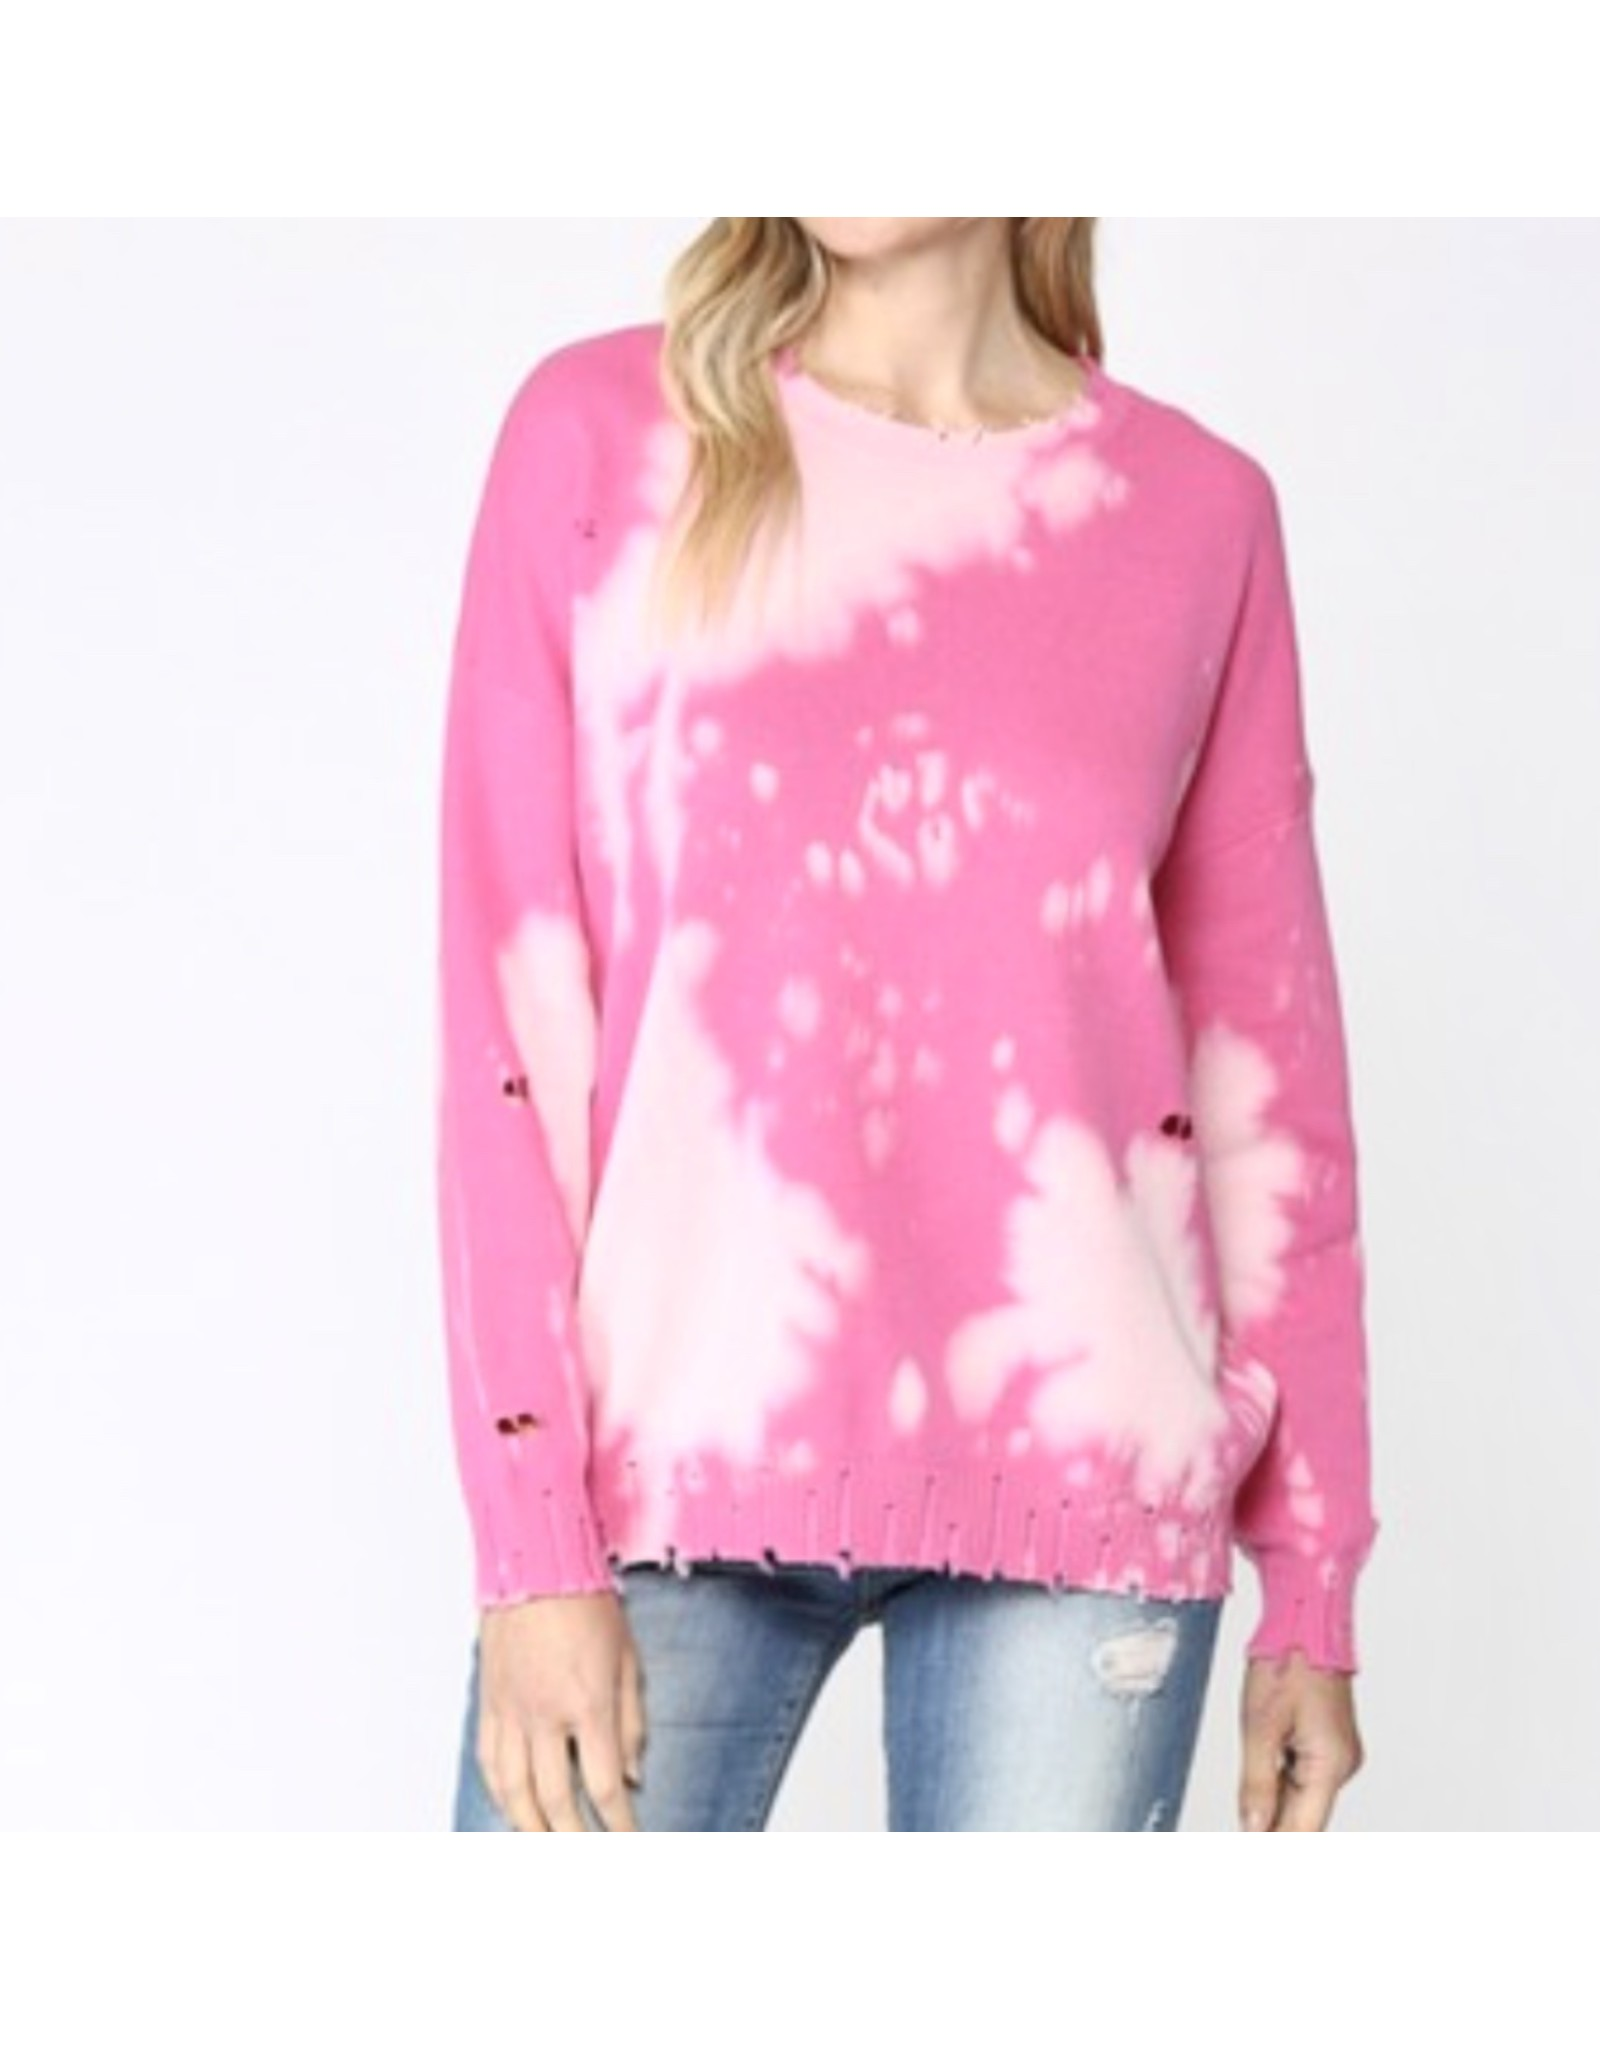 Tie Dye Distressed Sweater - Hot Pink